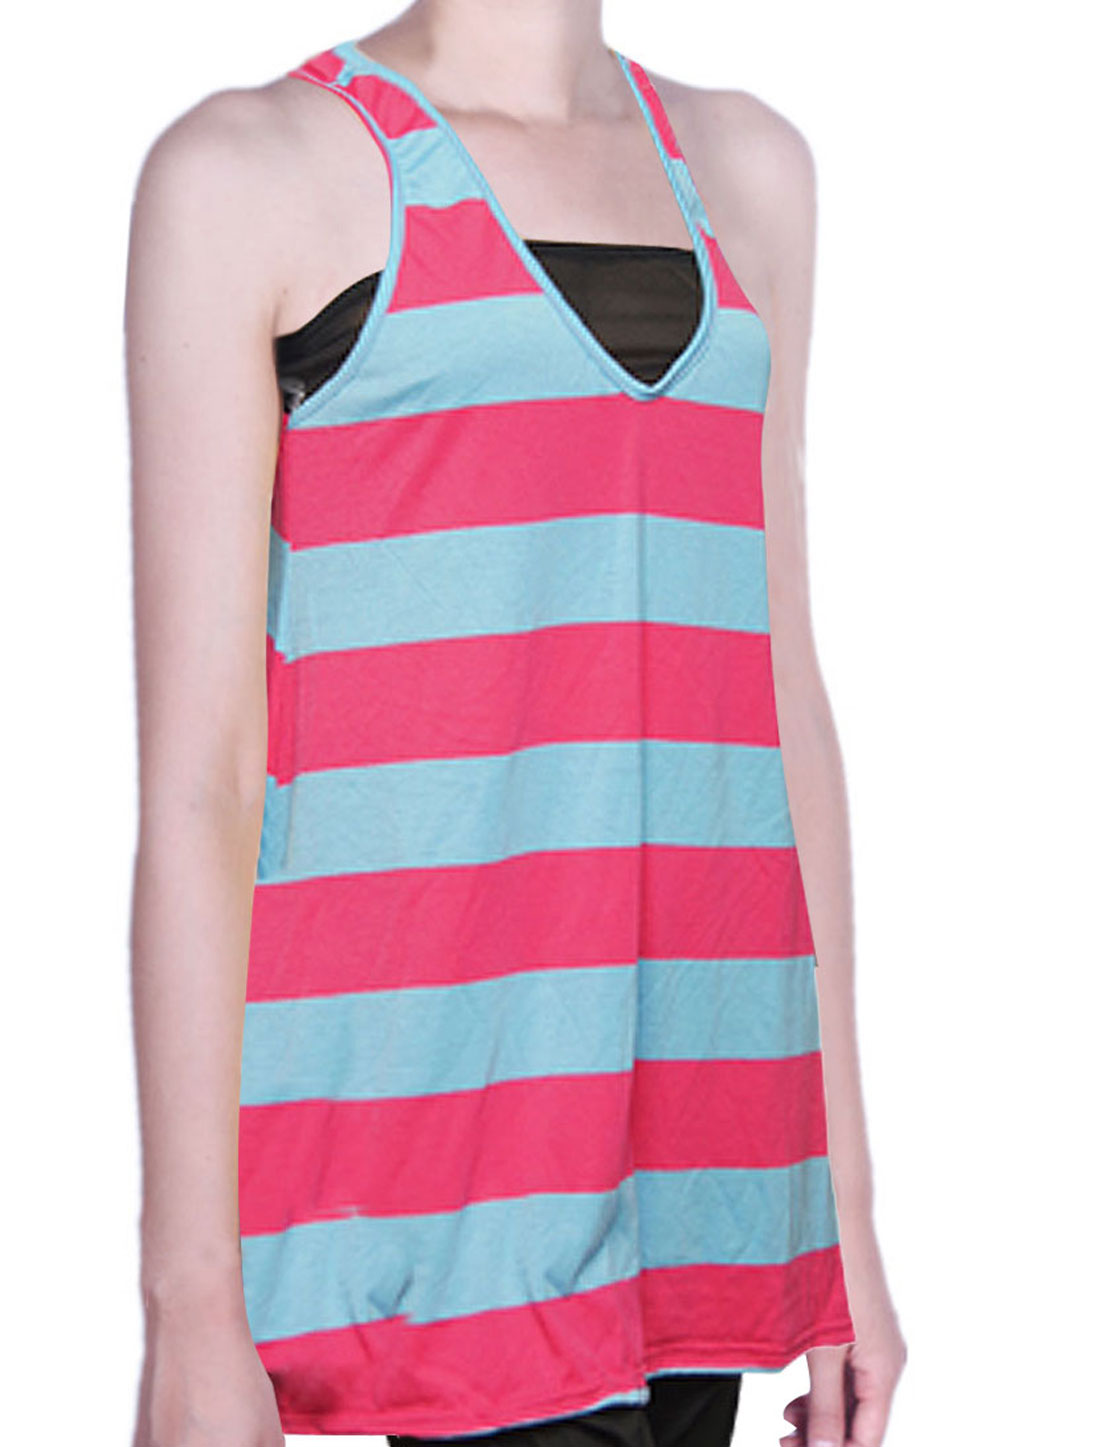 Lady Fuchsia Blue Striped A Line Racer Back Tank Top S